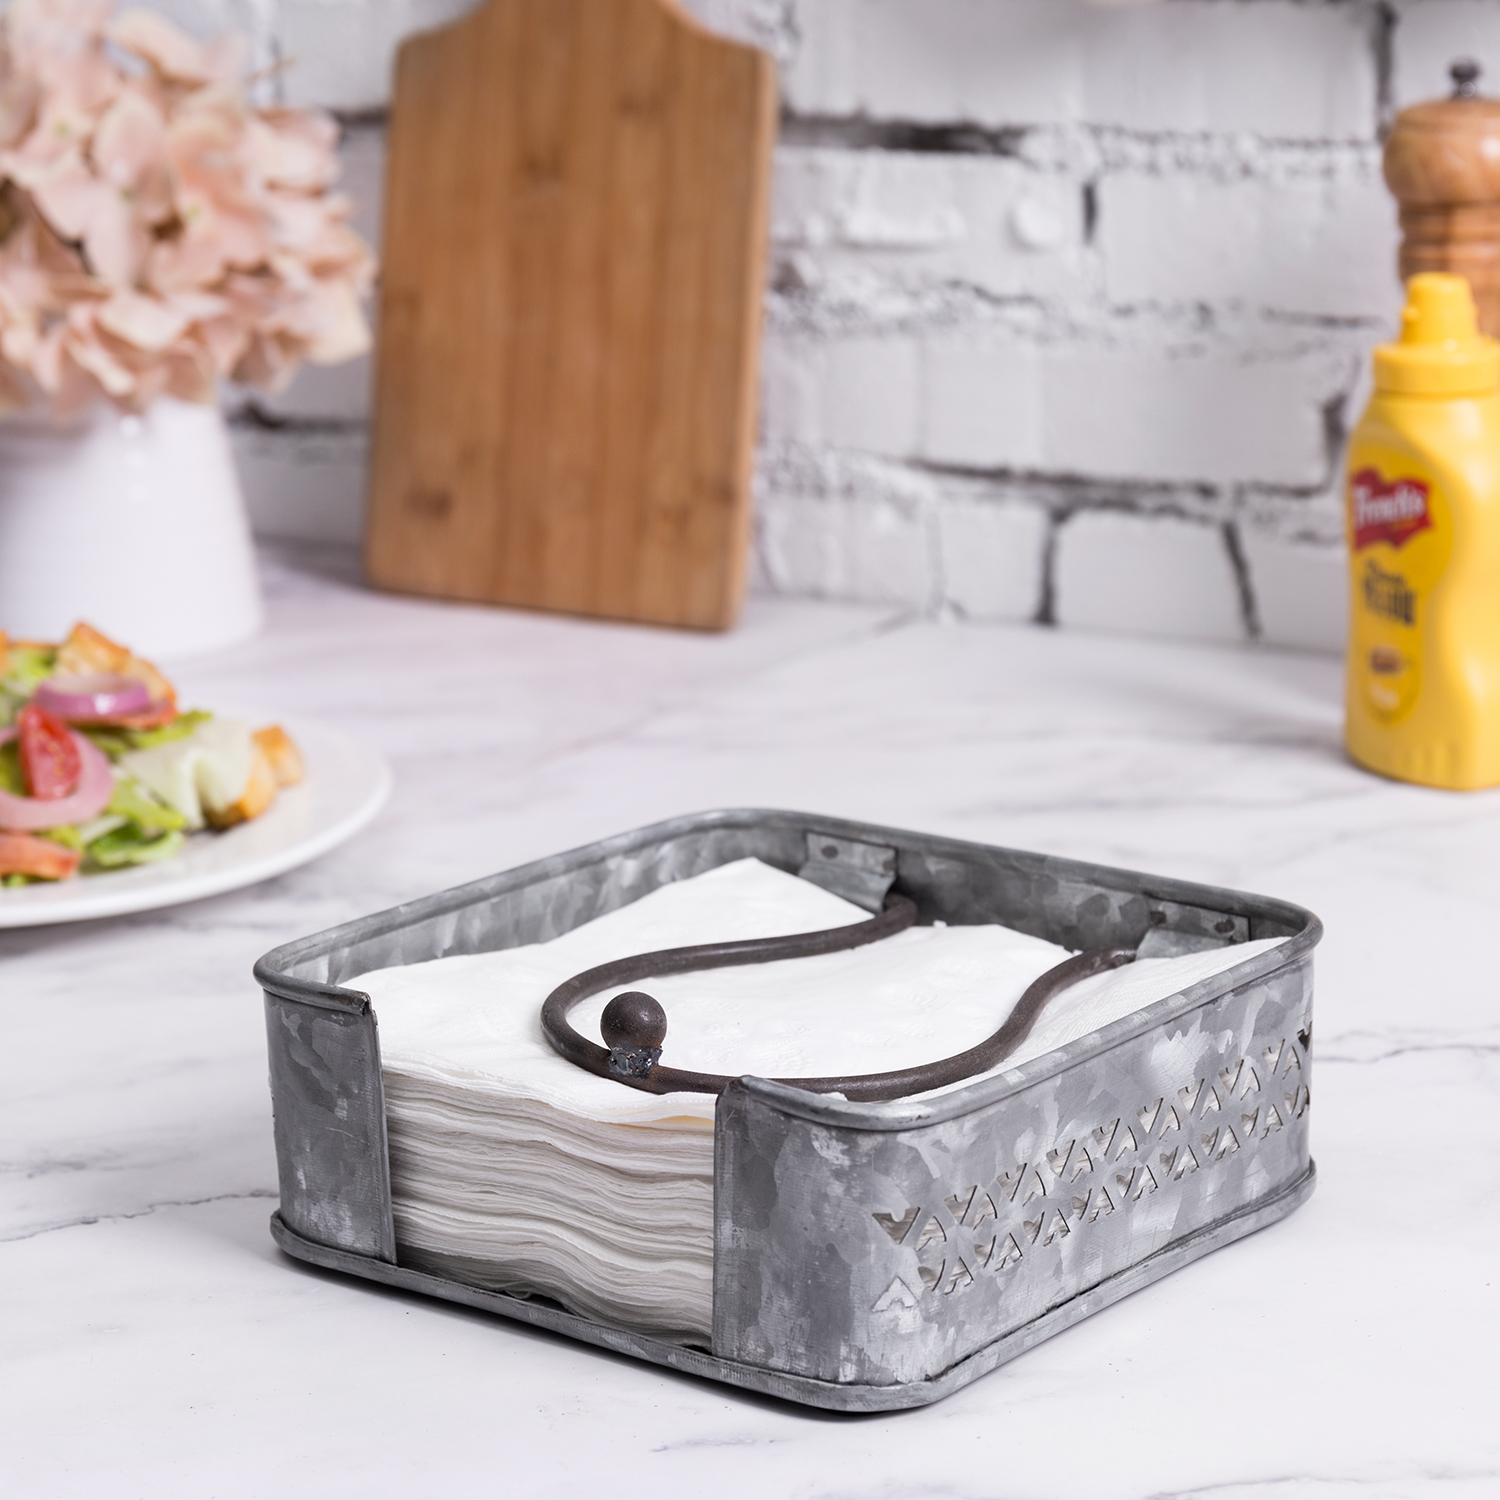 Mygift Cutout Heart Design Silver Metal Tabletop Napkin Holder With Weighted Arm Ebay